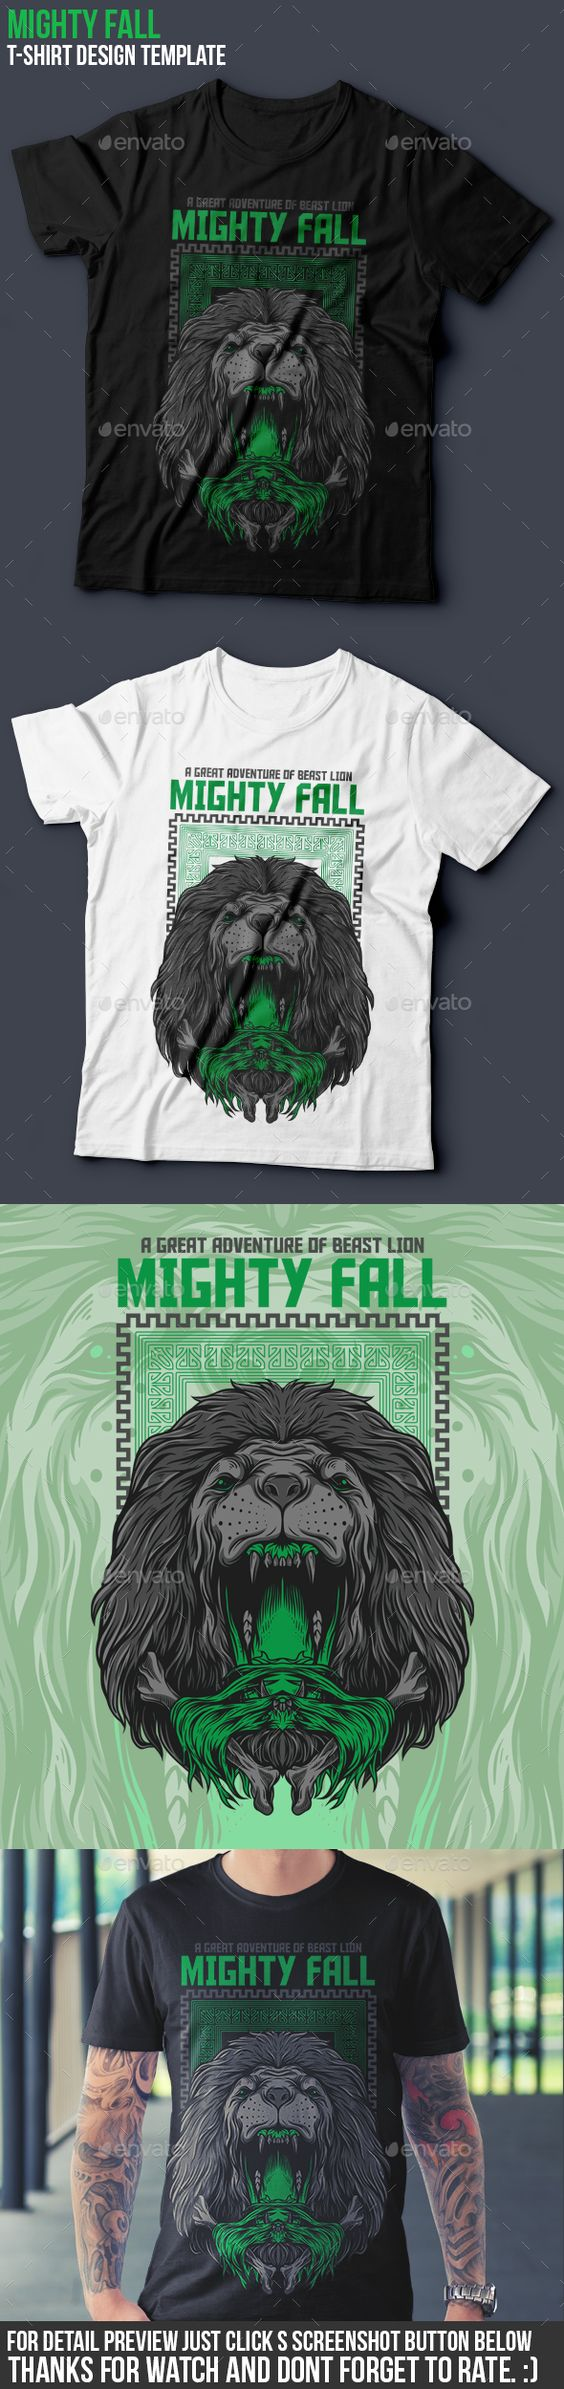 Mighty Fall T-Shirt Design Template - Grunge Designs Template Vector EPS, AI Illustrator. Download here: https://graphicriver.net/item/mighty-fall-tshirt-design/16916659?s_rank=20&ref=yinkira